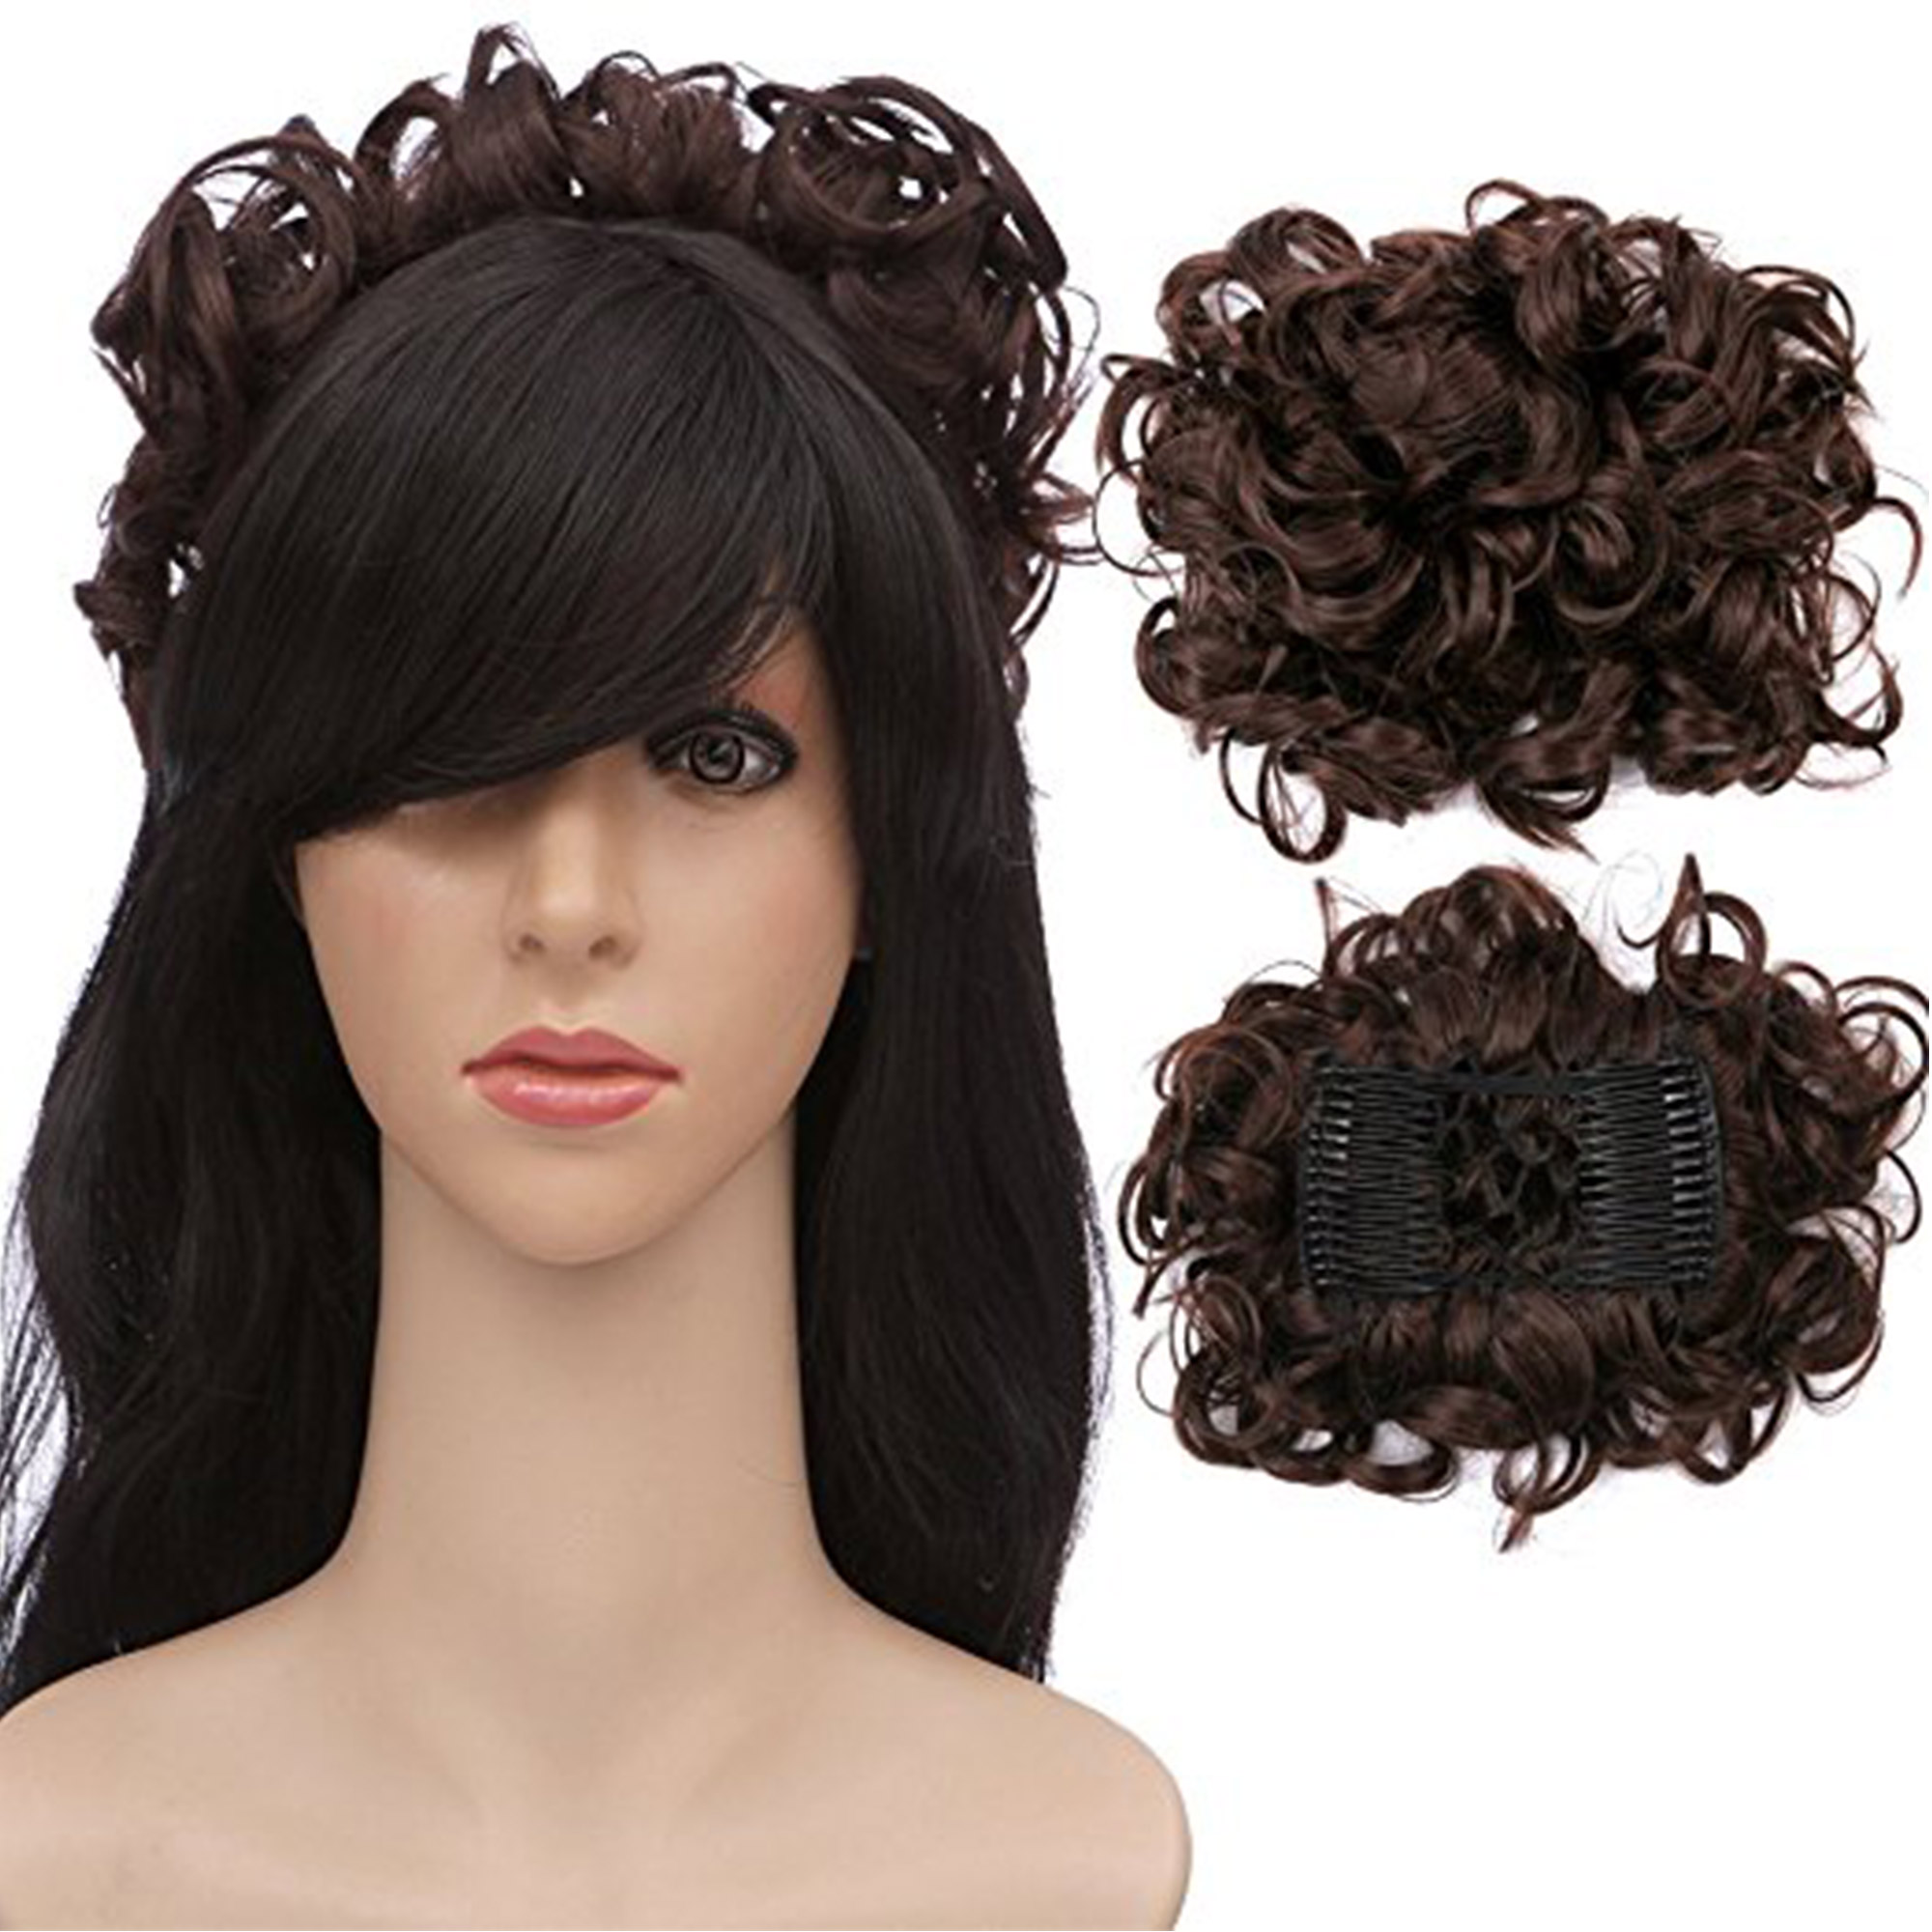 FLORATA Short Messy Curly Dish Hair Bun extension Easy Stretch Hair Combs Clip In Ponytail extension Scrunchie chignon Tray Ponytail